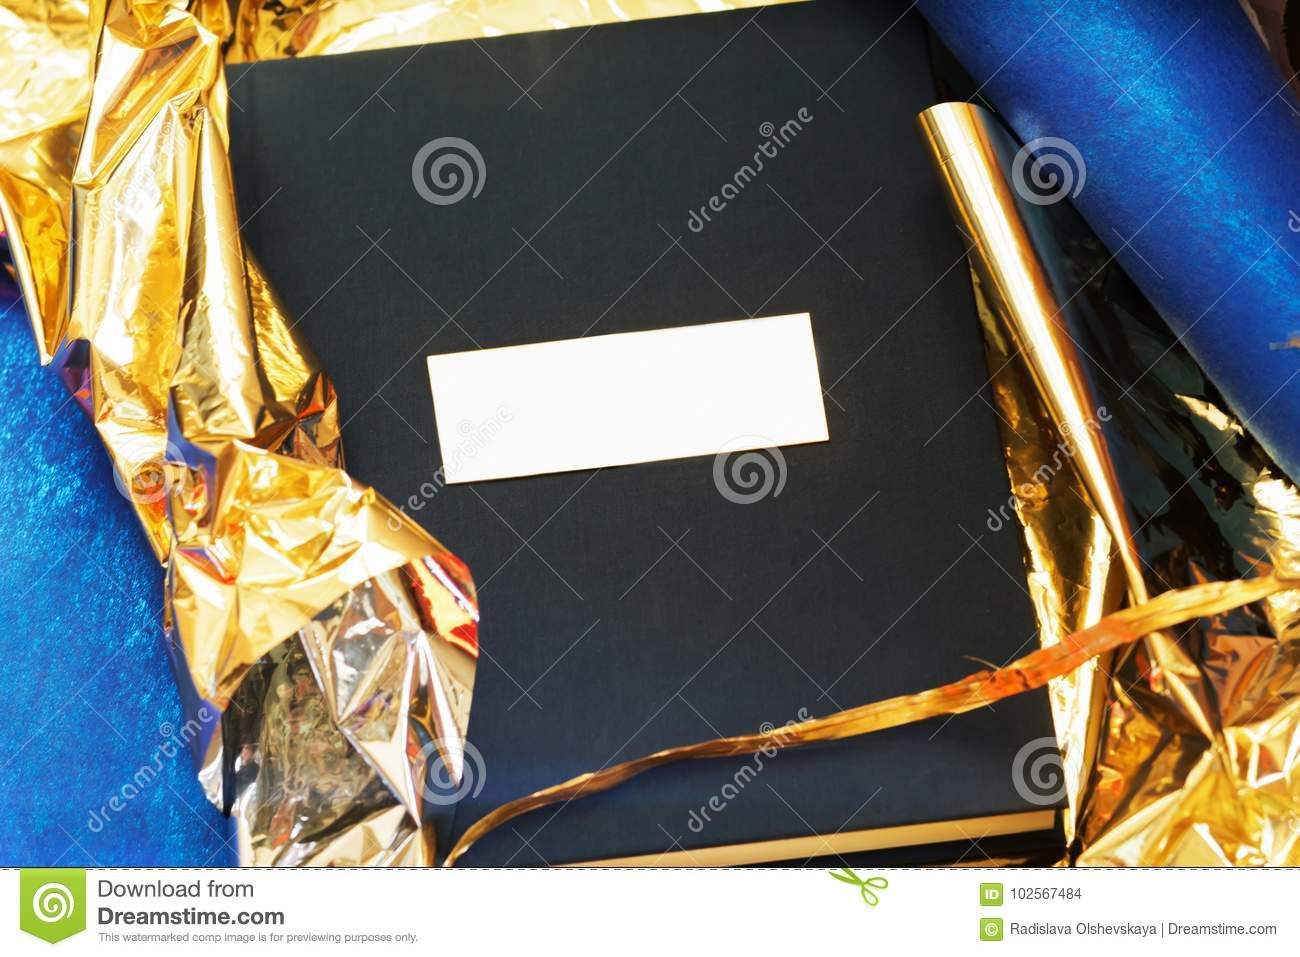 A photobook with a cover of a blue takani in a gift gold wrapper.